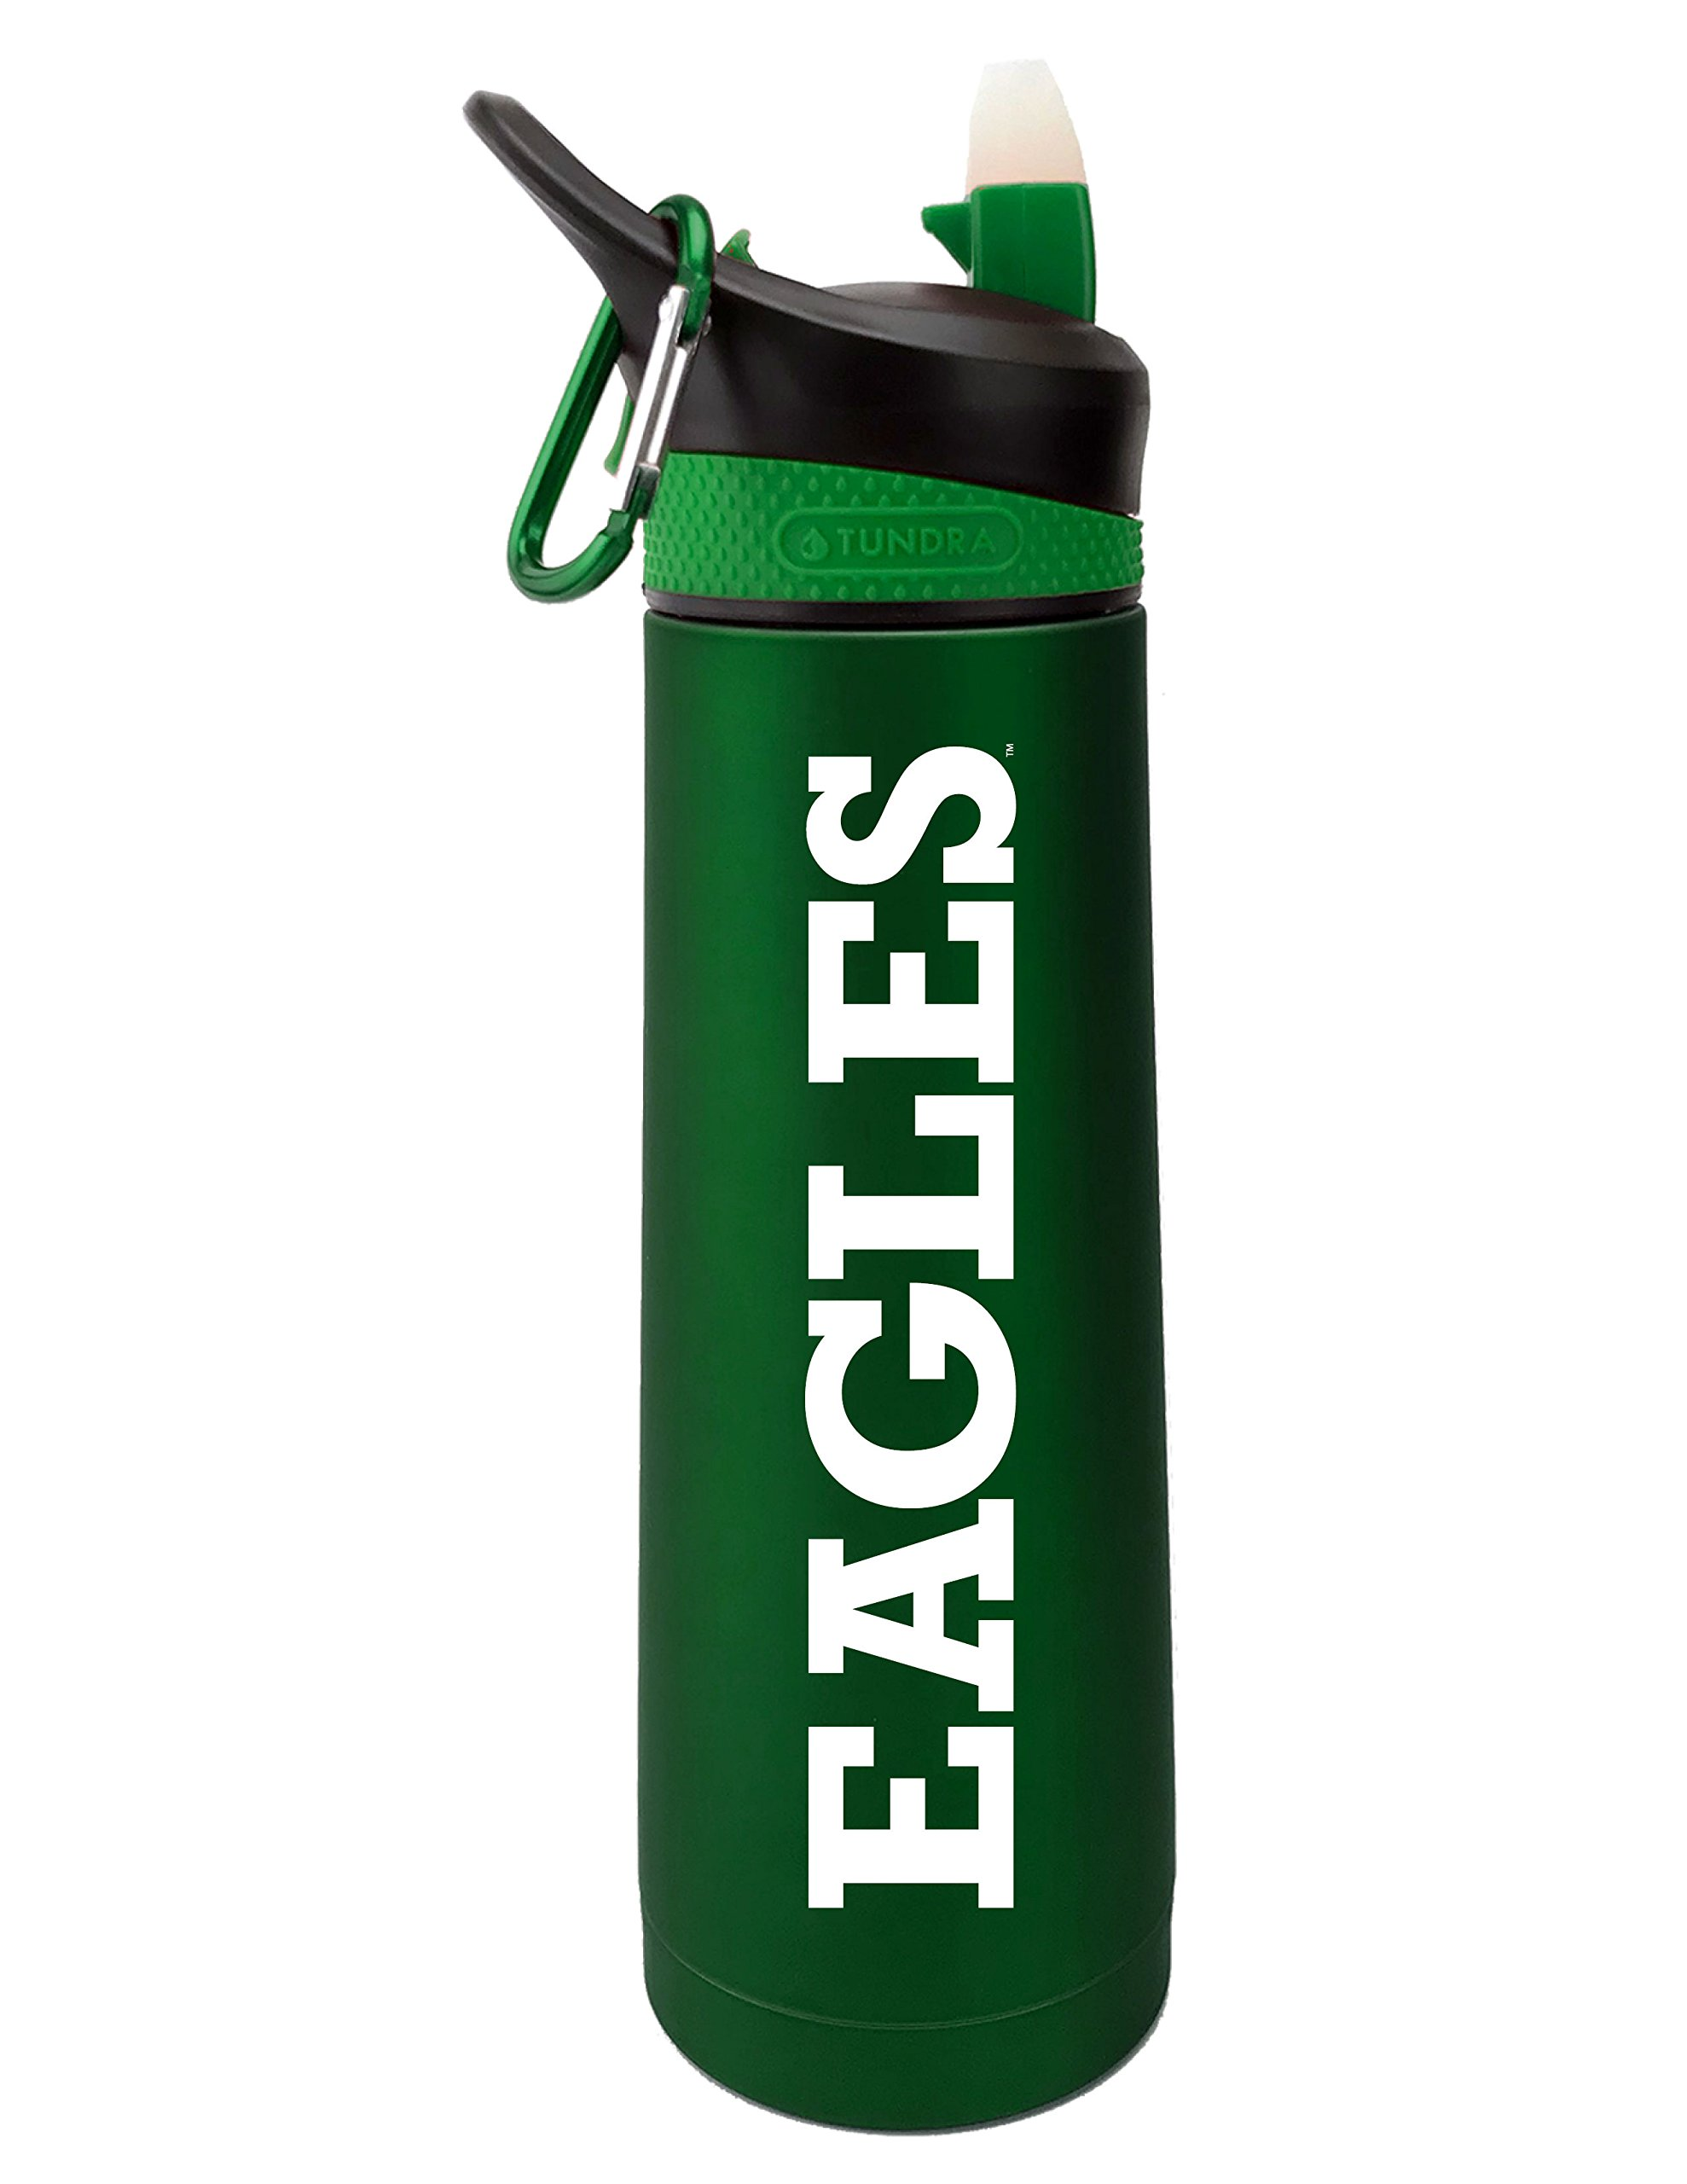 The Fanatic Group Eastern Michigan University Dual Walled Stainless Steel Sports Bottle, Design 2 - Green